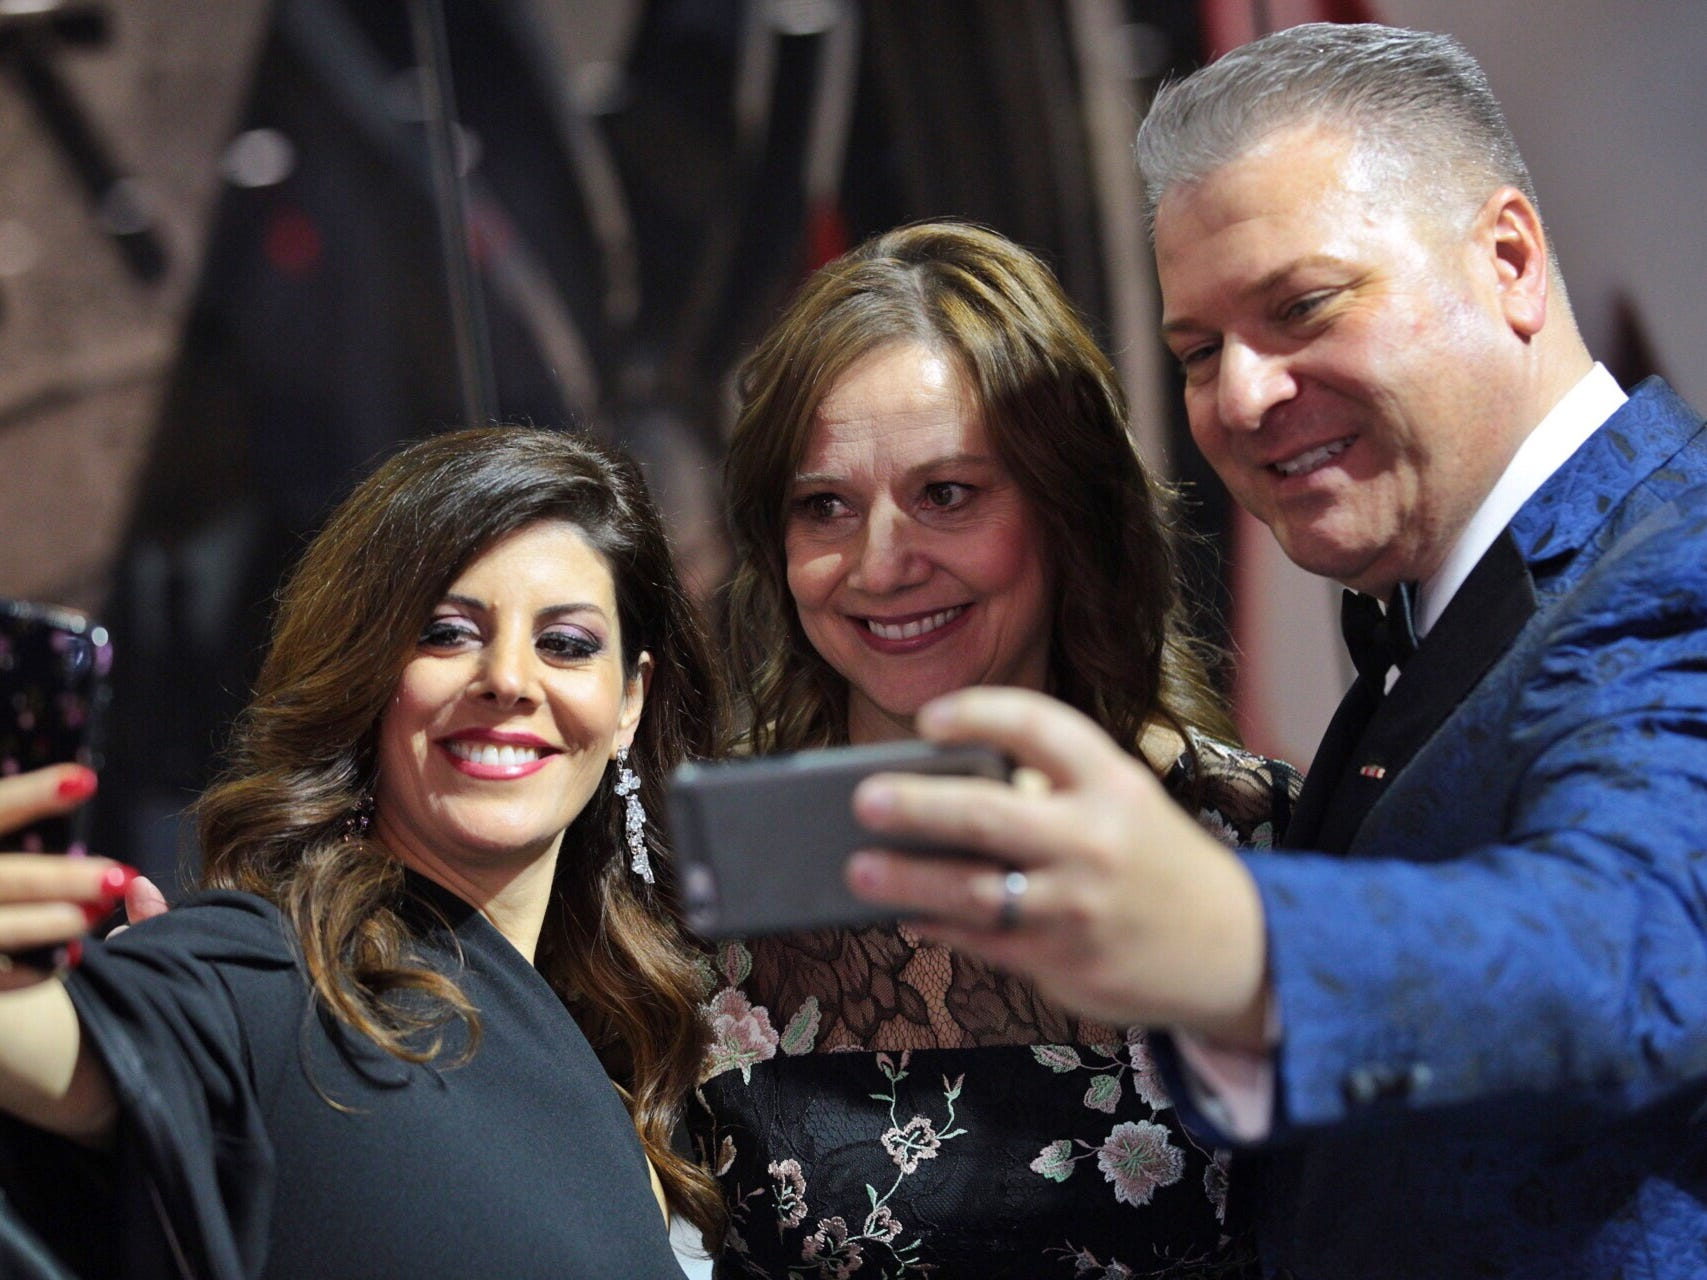 Rocky Raczkowski and wife Amalia Raczkowski take selfies with General Motors CEO Mary Barra during the 2019 North American International Auto Show Charity Preview at Cobo Center in Detroit on Friday, January 18, 2019.